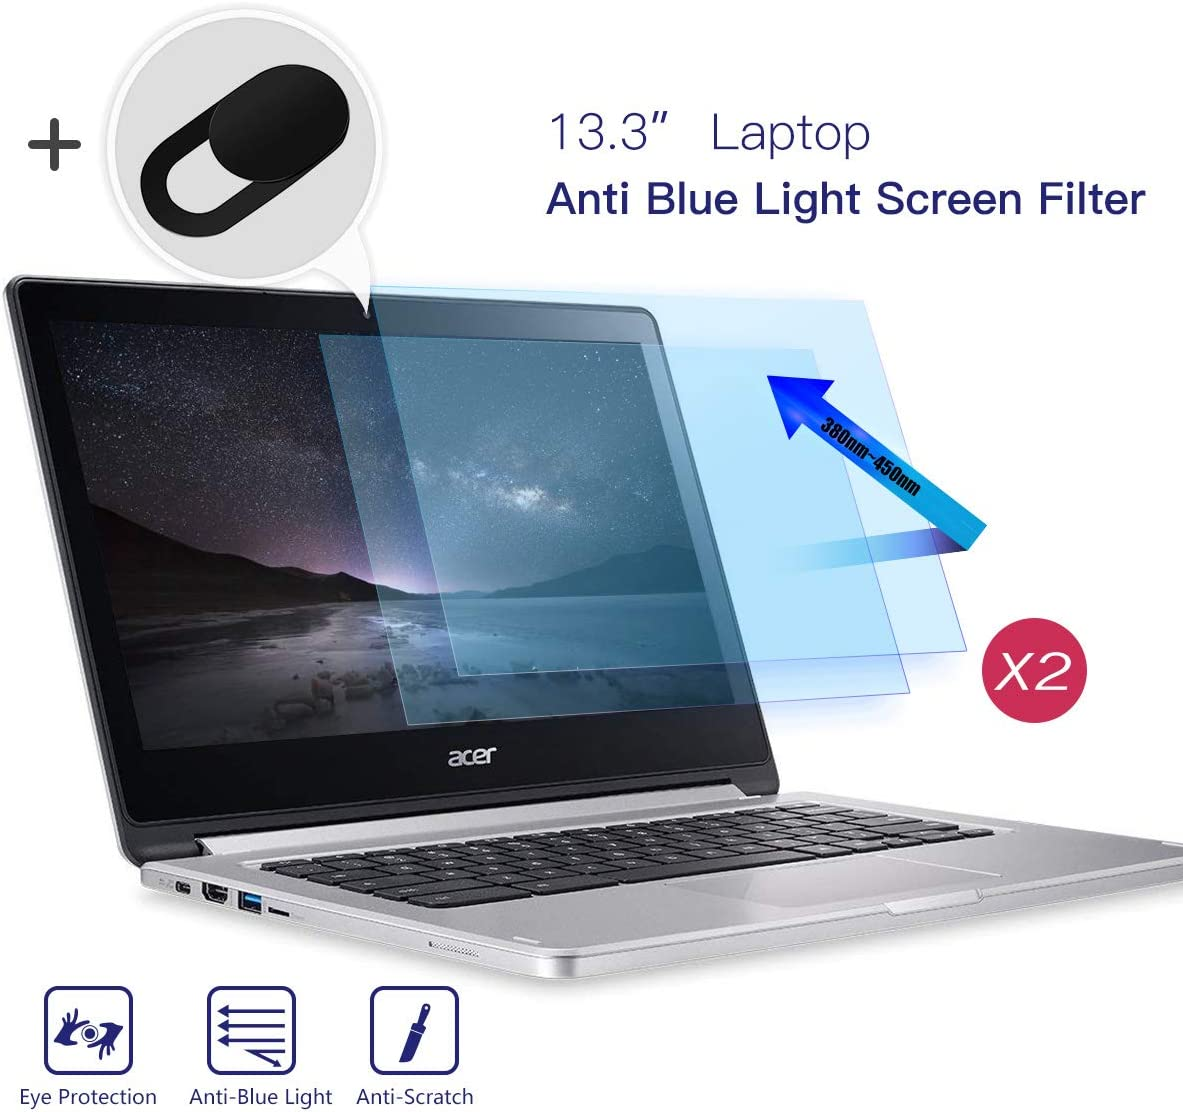 "2-Pack 13.3 Inch Laptop Screen Protector, Anti Blue Light Anti Glare Filter, Eye Protection Blue Light Blocking& Anti Glare Screen Protector for Dell/HP/Acer/Asus/Lenovo 13.3""16:9 Laptops with Webcam Cover"